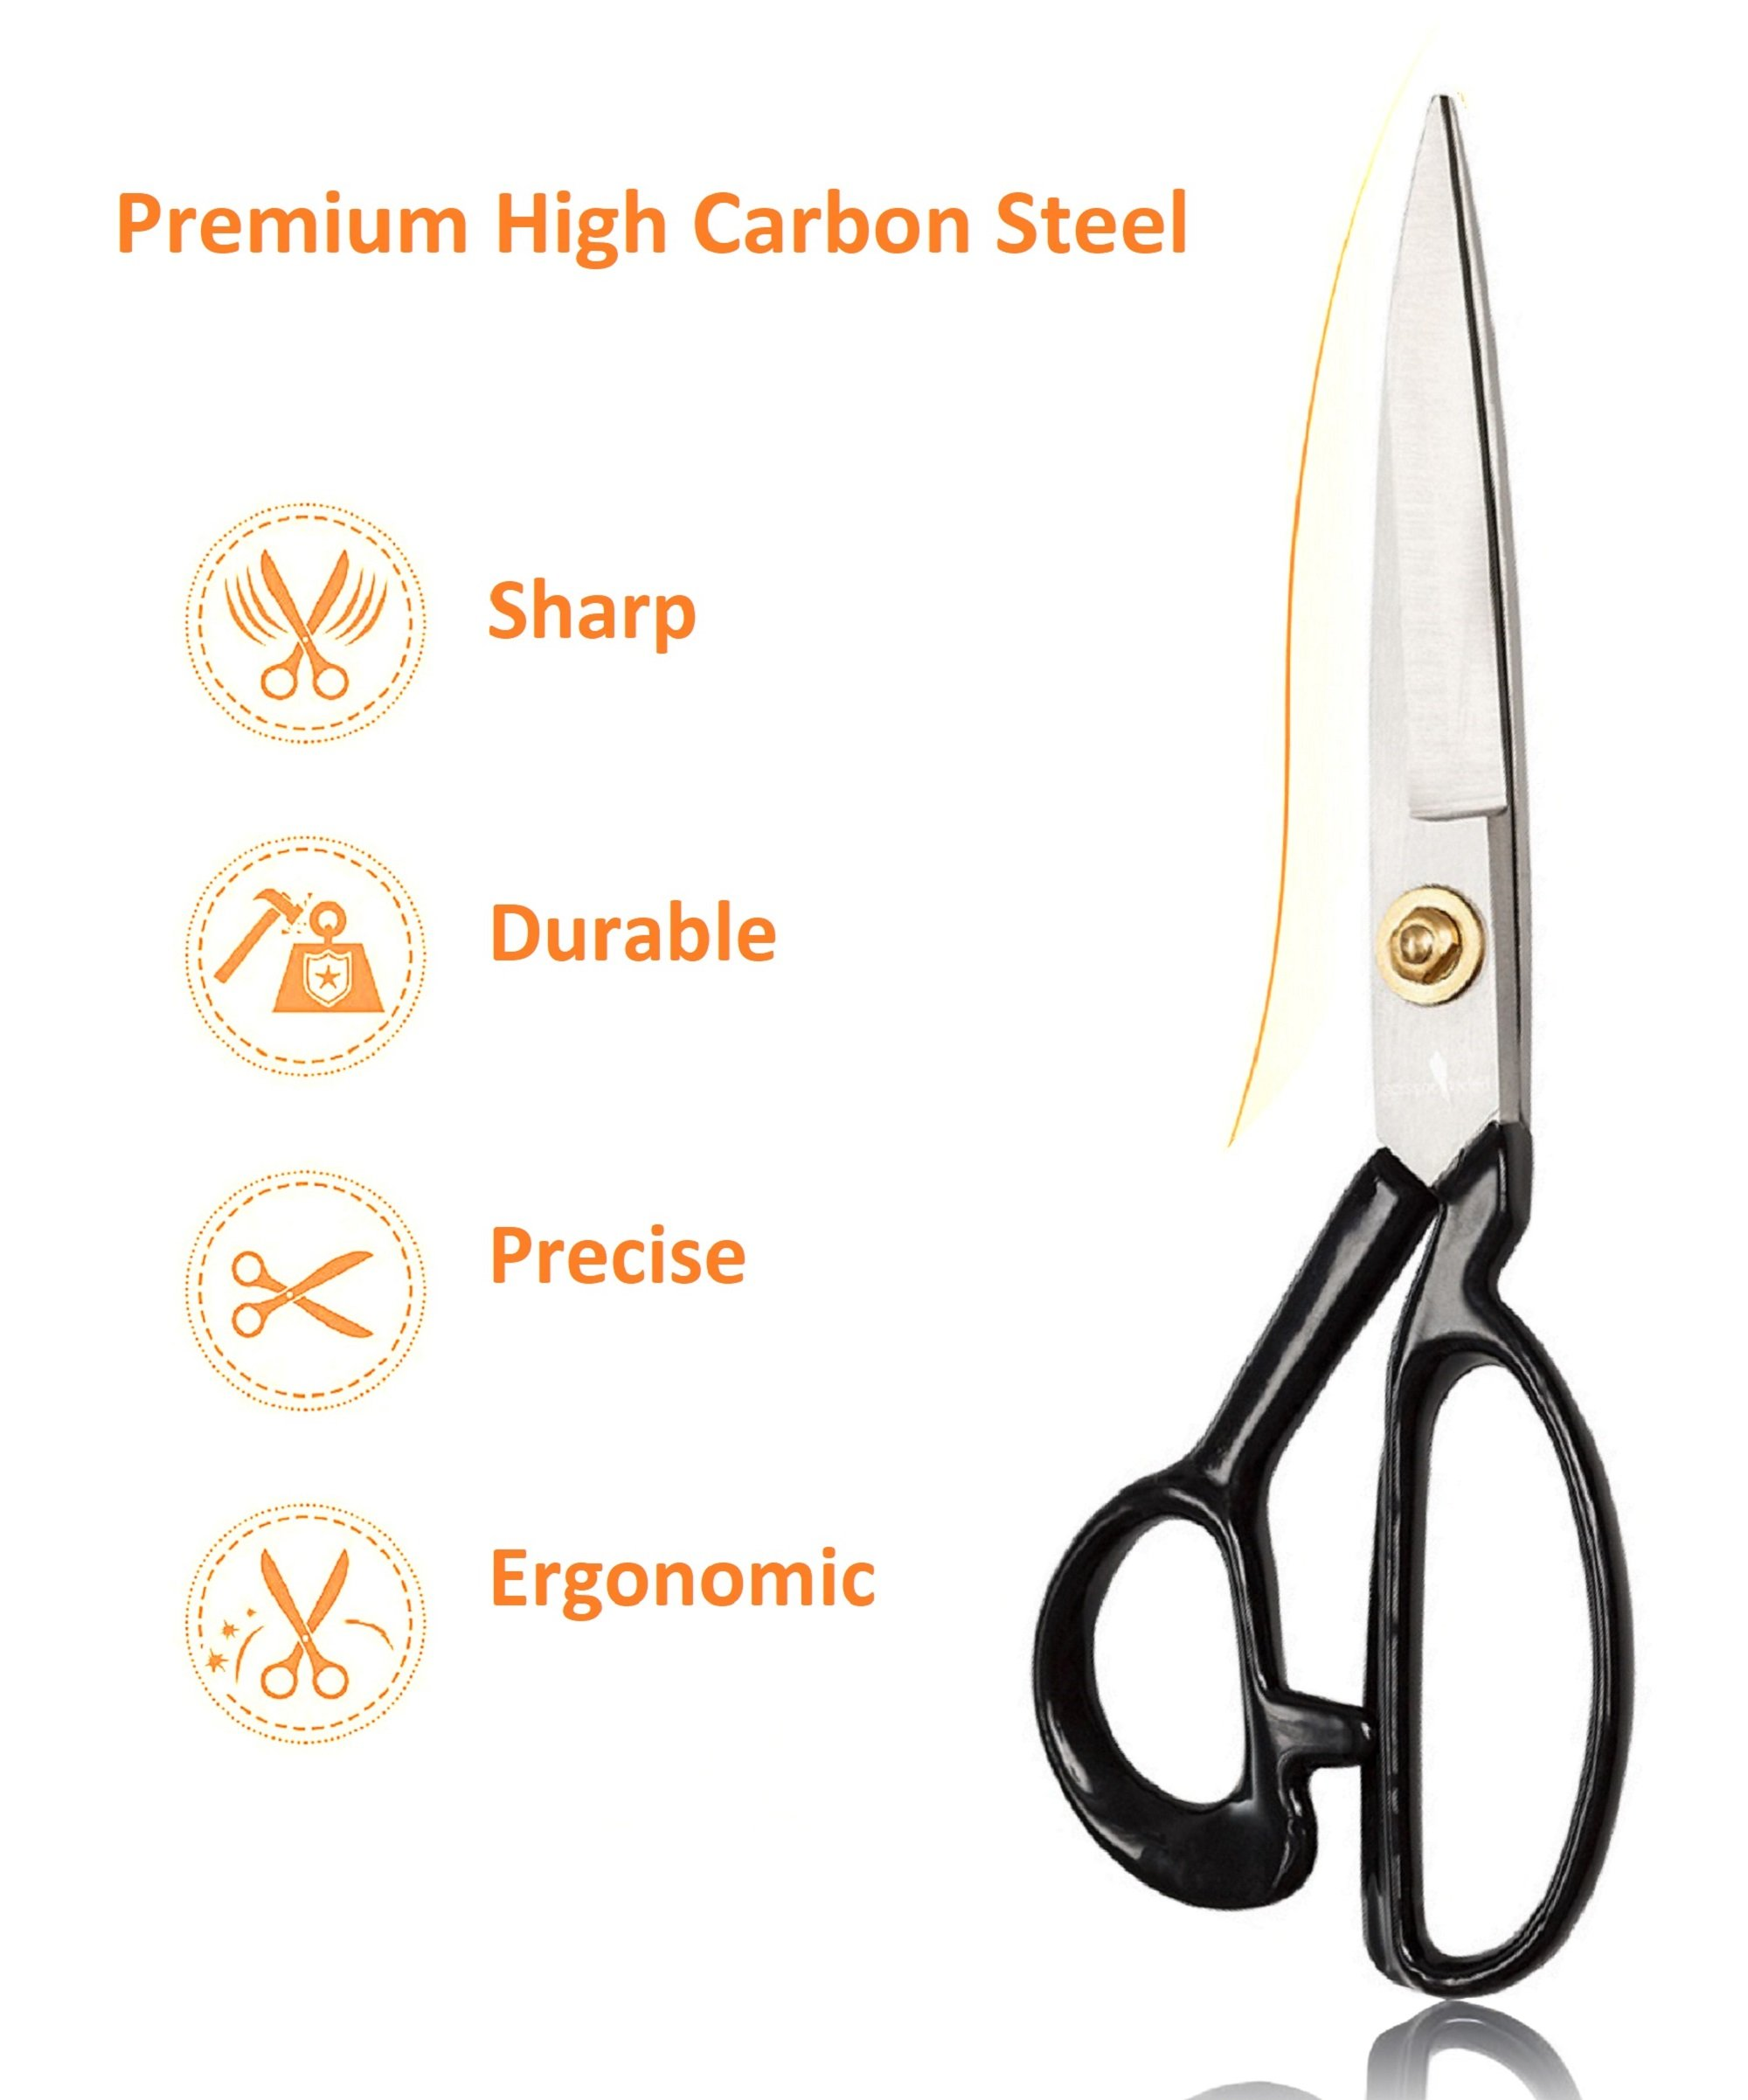 Sewing Scissors Ultra Sharp + Free Craft Knife - 9'' Heavy Duty Professional Shears - All Purpose Scissors: Office & Crafts, Perfect for Seamstress, Tailors, Dressmakers, Students, Artists by Scissor-Tailed